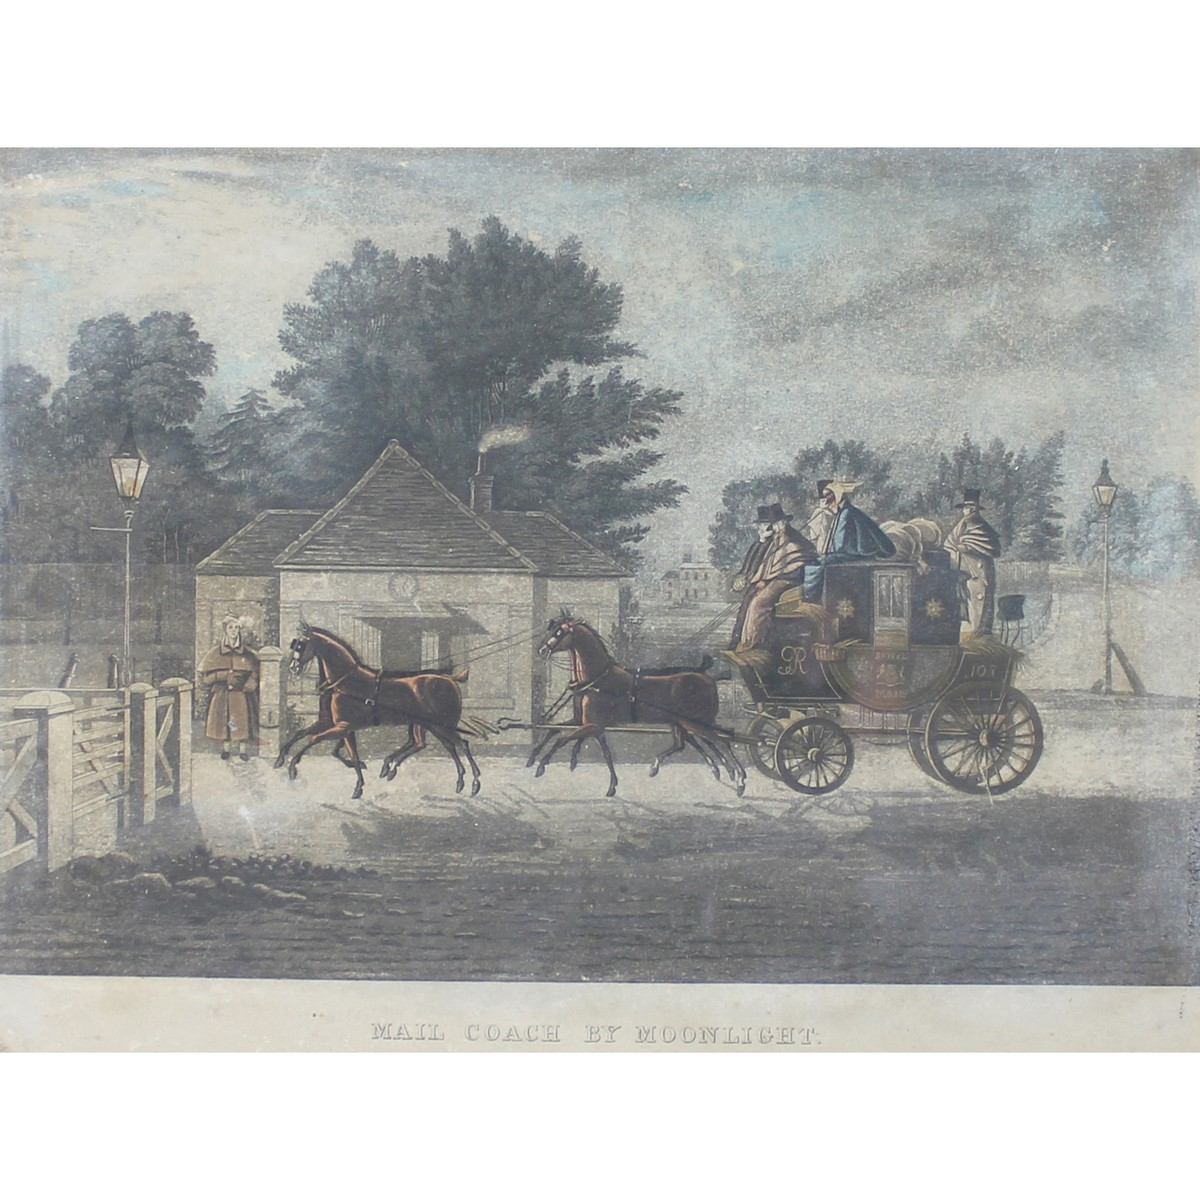 Lot 62 - Royal Mail Starting from the Post Office, Mail Coach by Moonlight.